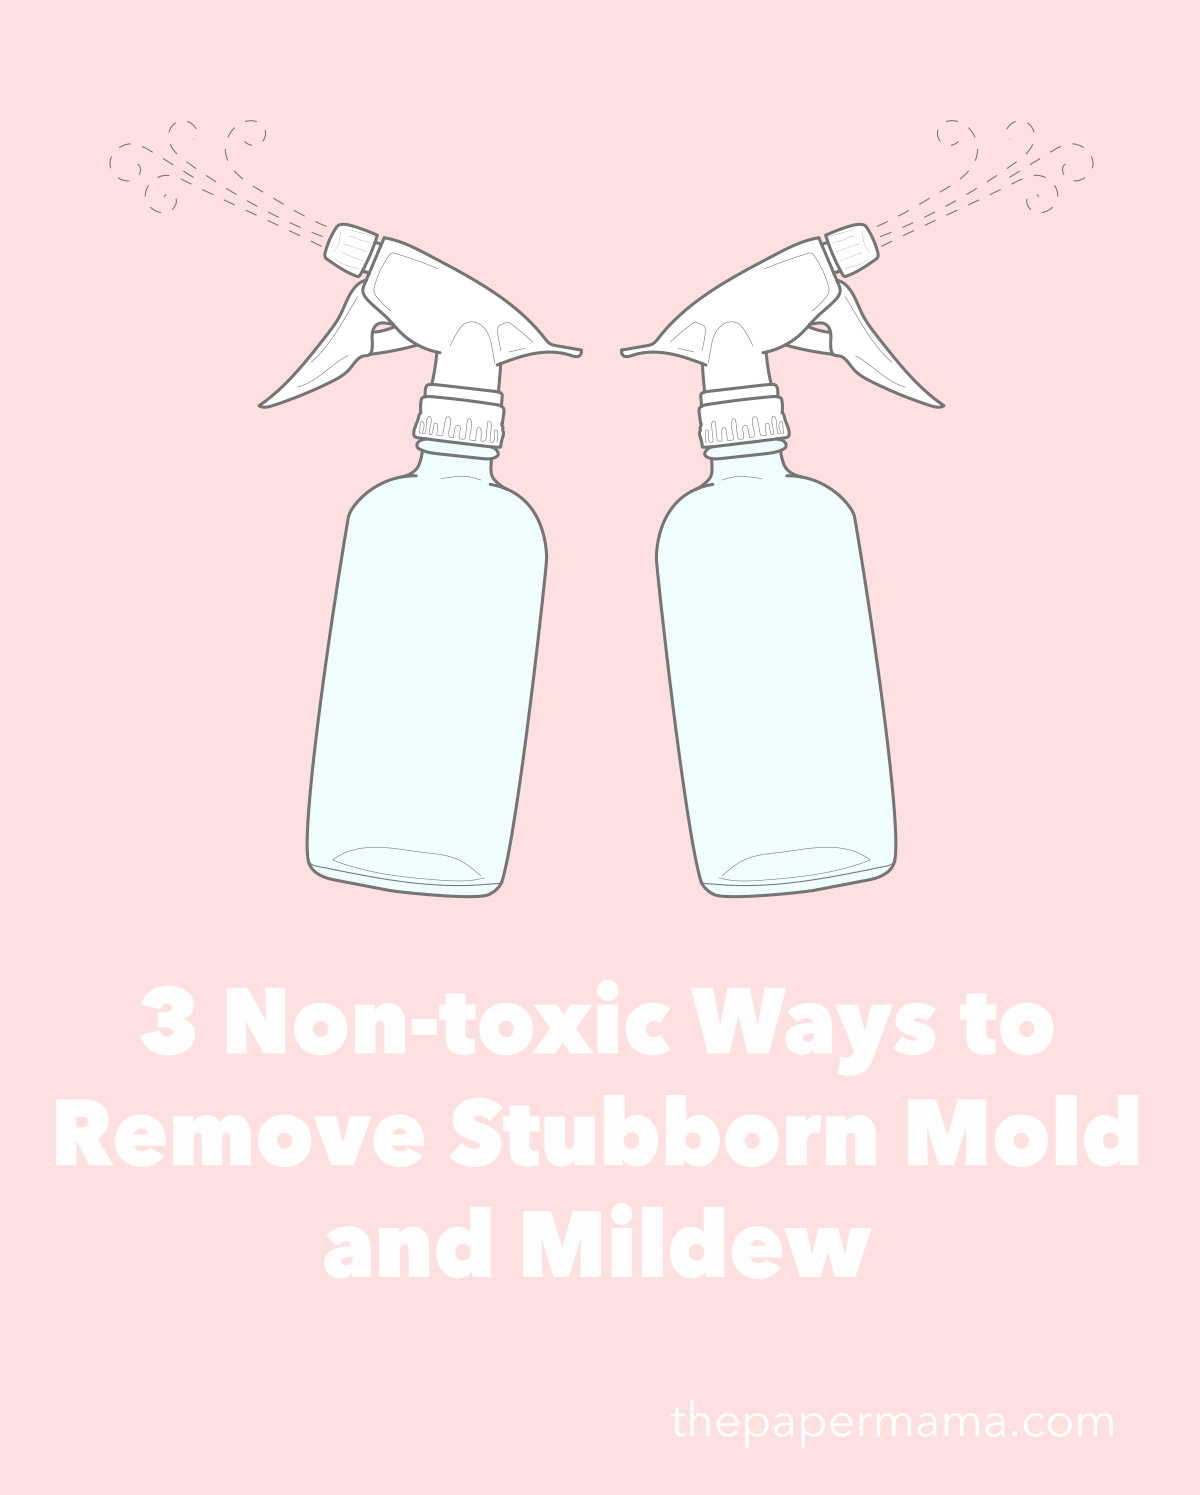 3 Non-toxic Ways to Remove Stubborn Mold and Mildew